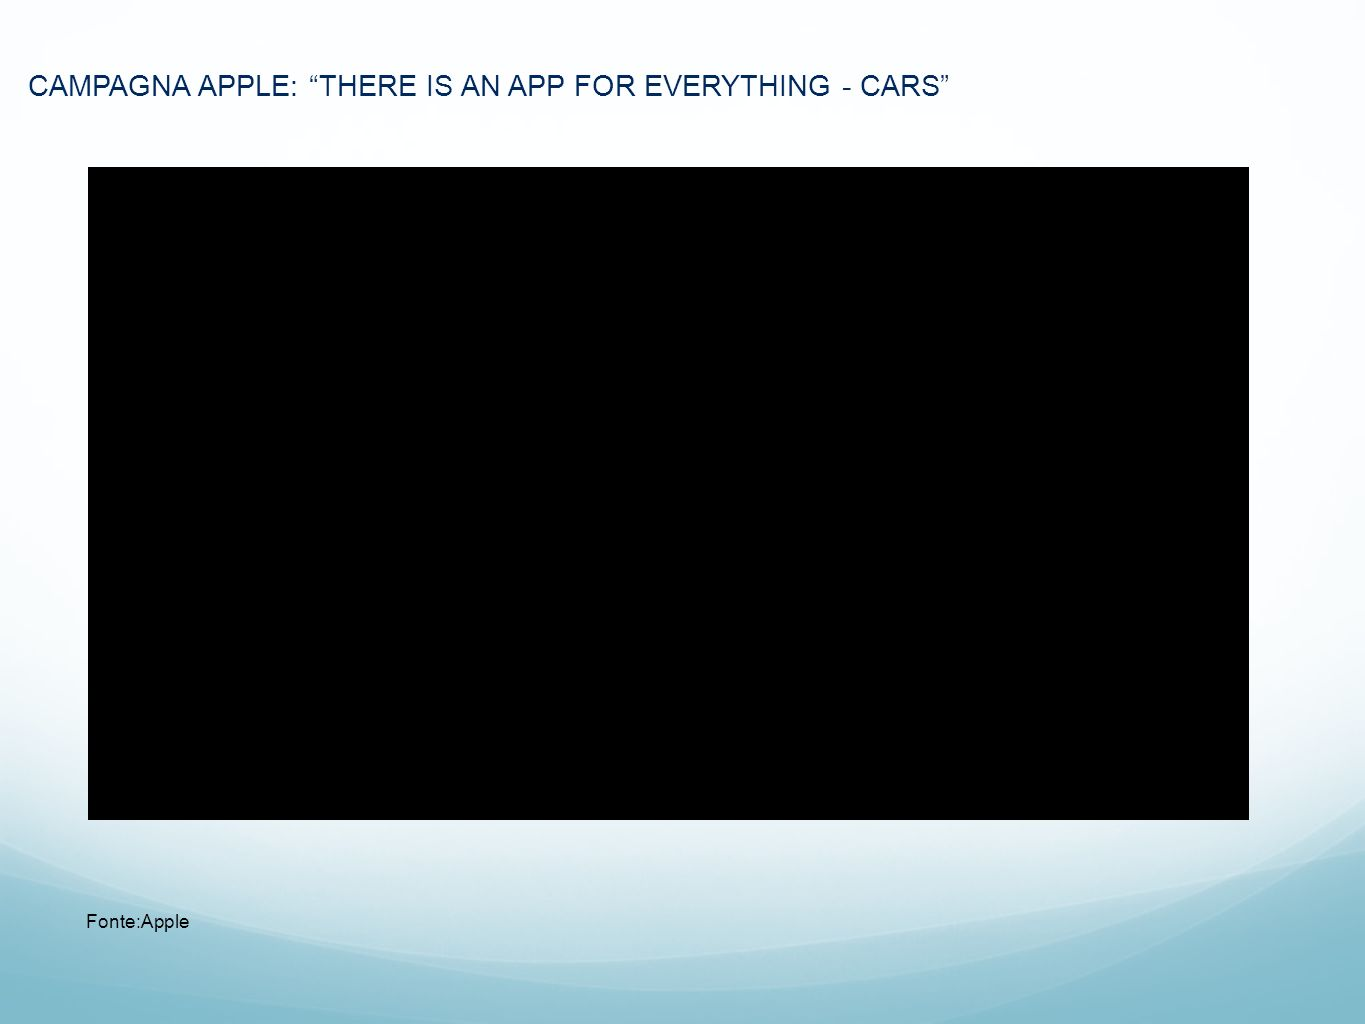 CAMPAGNA APPLE: THERE IS AN APP FOR EVERYTHING - CARS Fonte:Apple